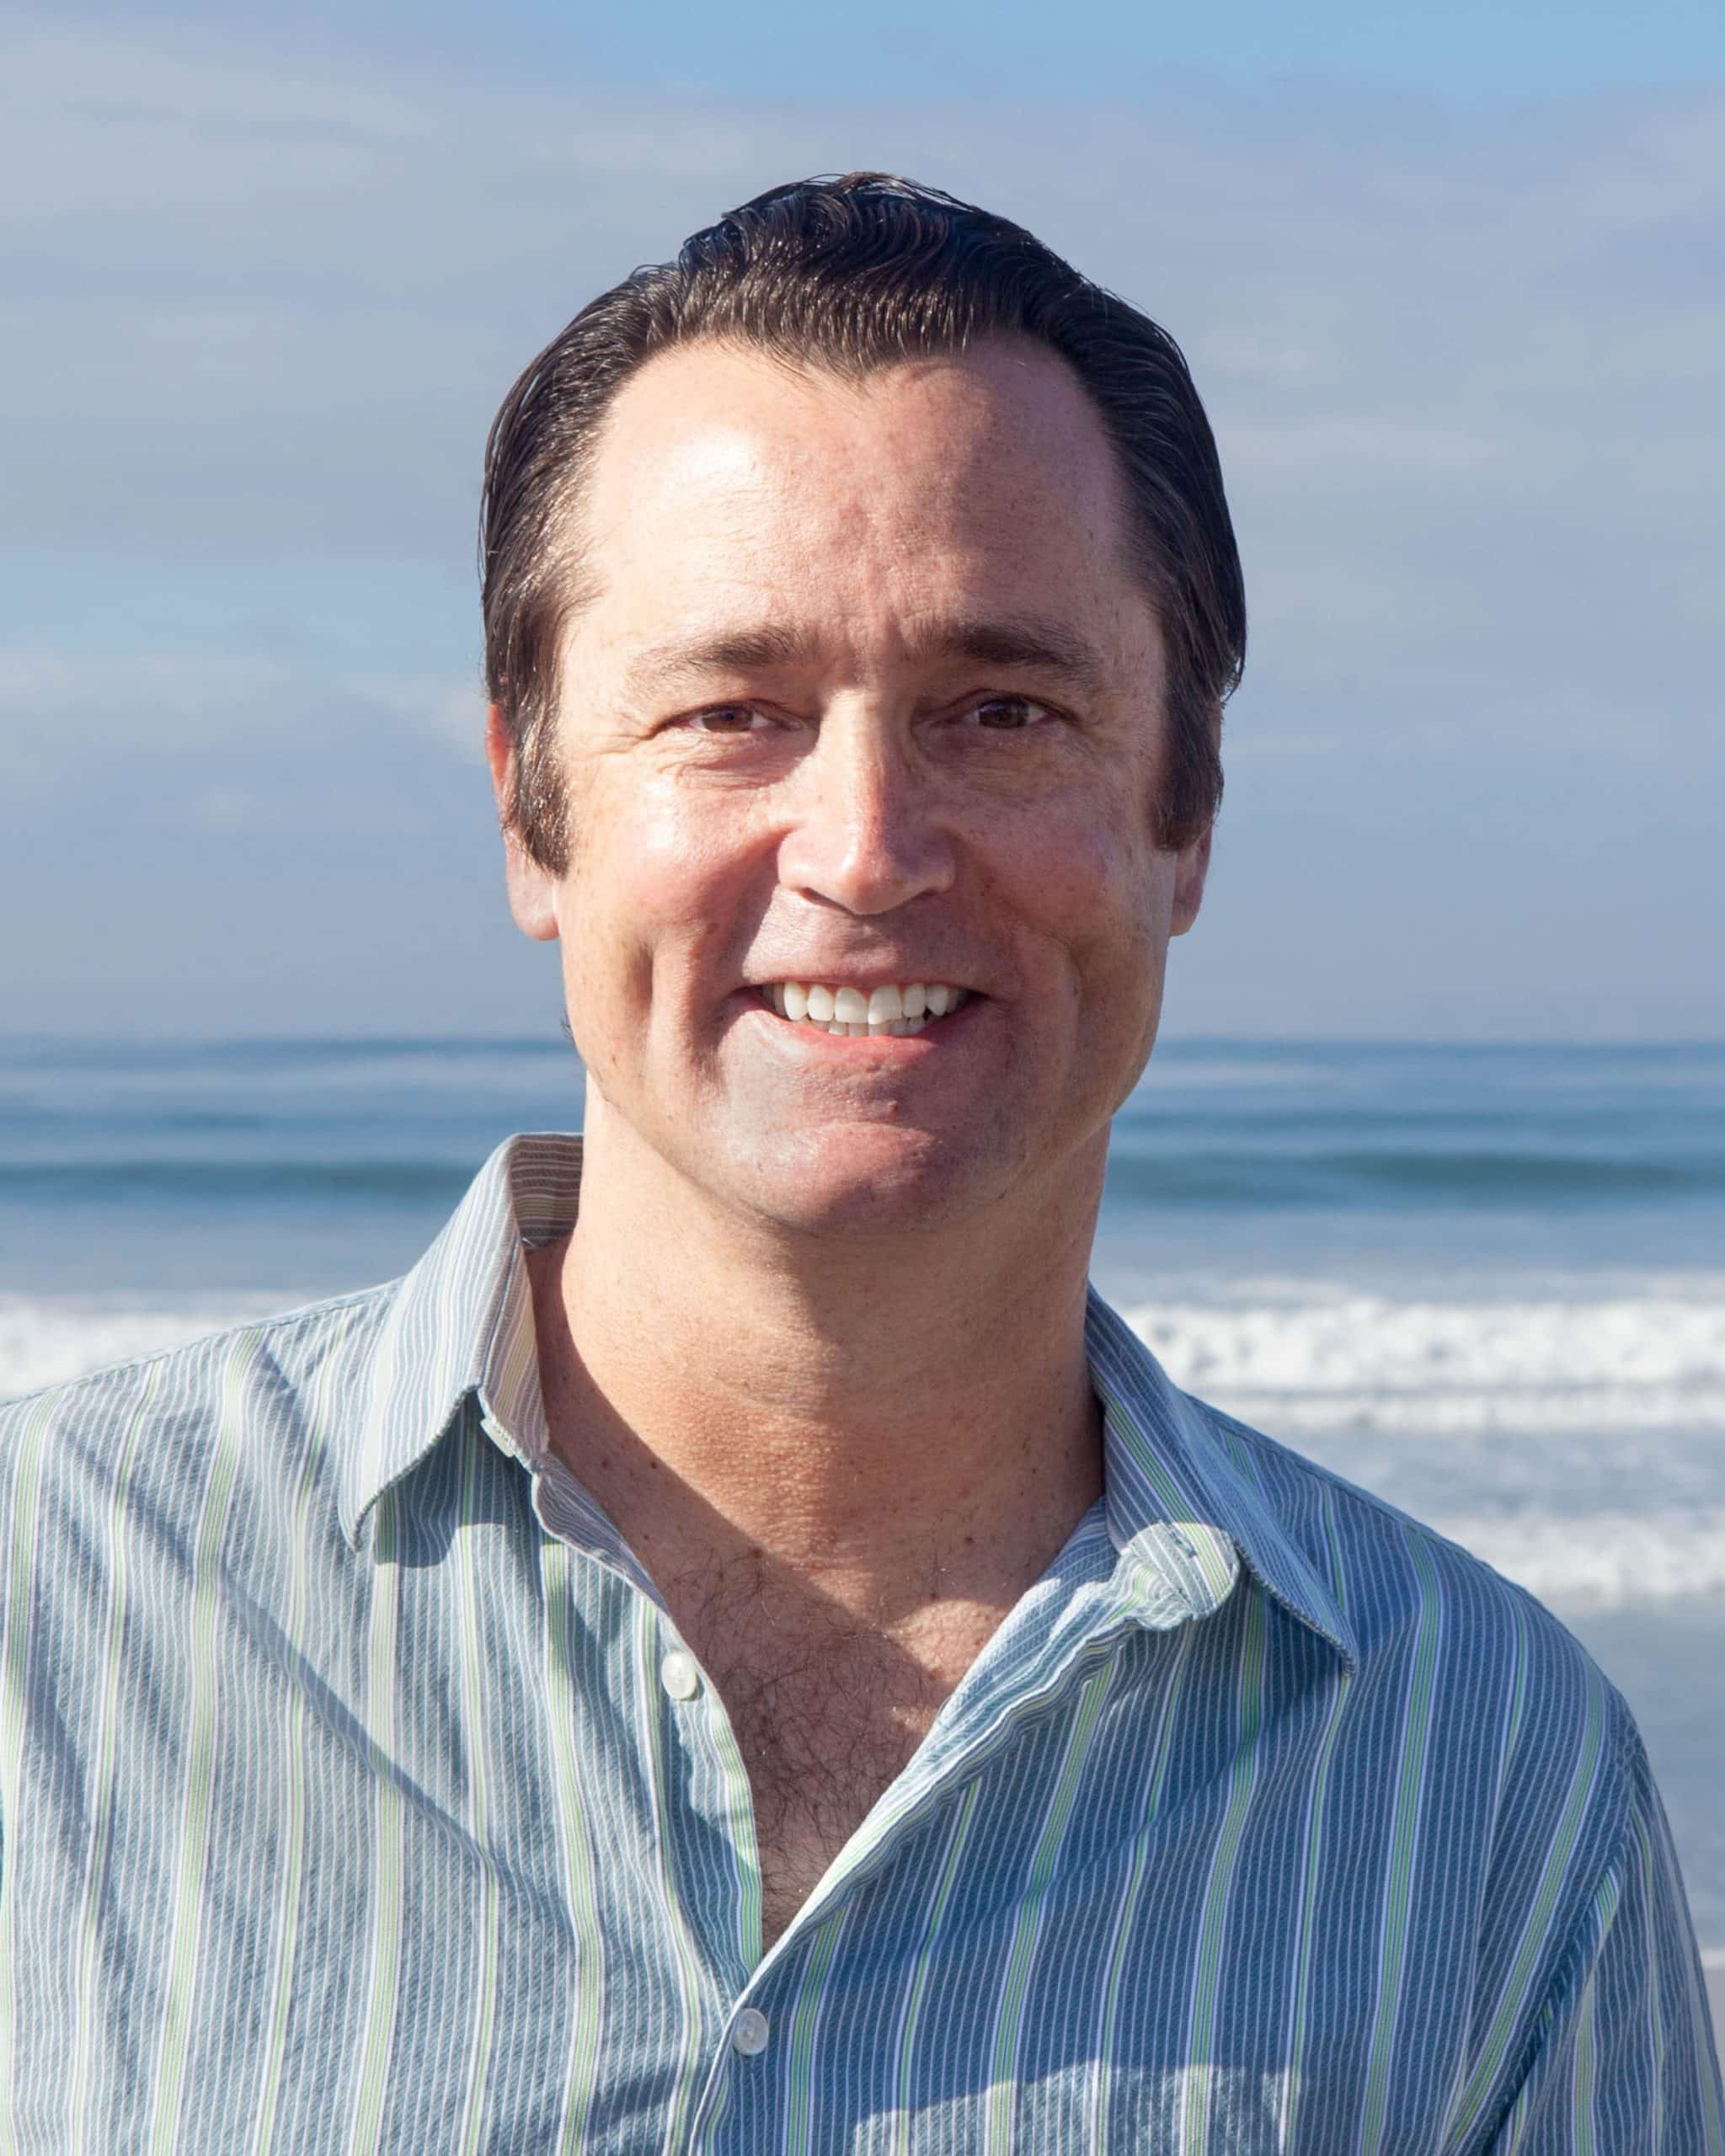 Chris Callahan, founder of My Kids Place Therapy